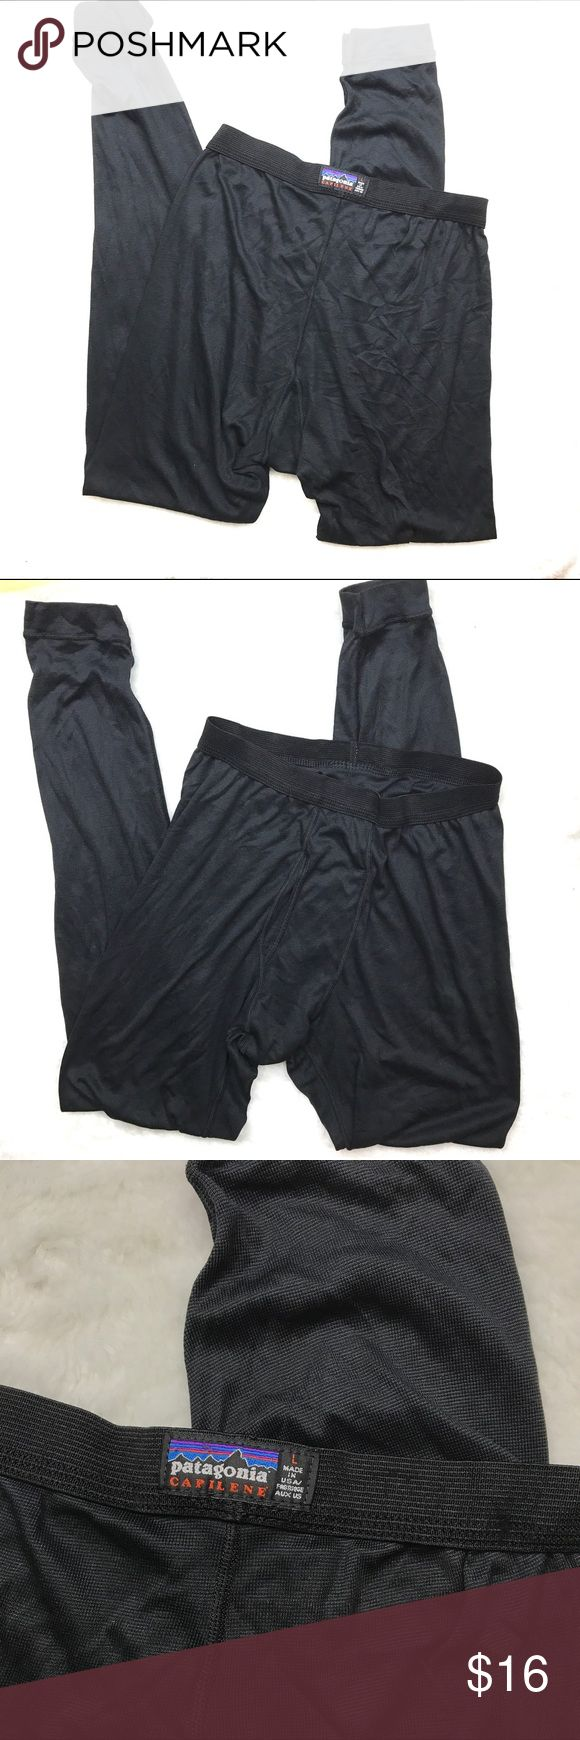 "Patagonia Capilene Thermals Black Pants  Baselayer Patagonia Capilene Long Underwear Baselayer Thermals Pants Mens Size Large - Excellent used condition  - Great Thermal pants  - 100% Polyester  - Length: 40"" - Elastic Waistband across: 13.5"" Patagonia Pants"